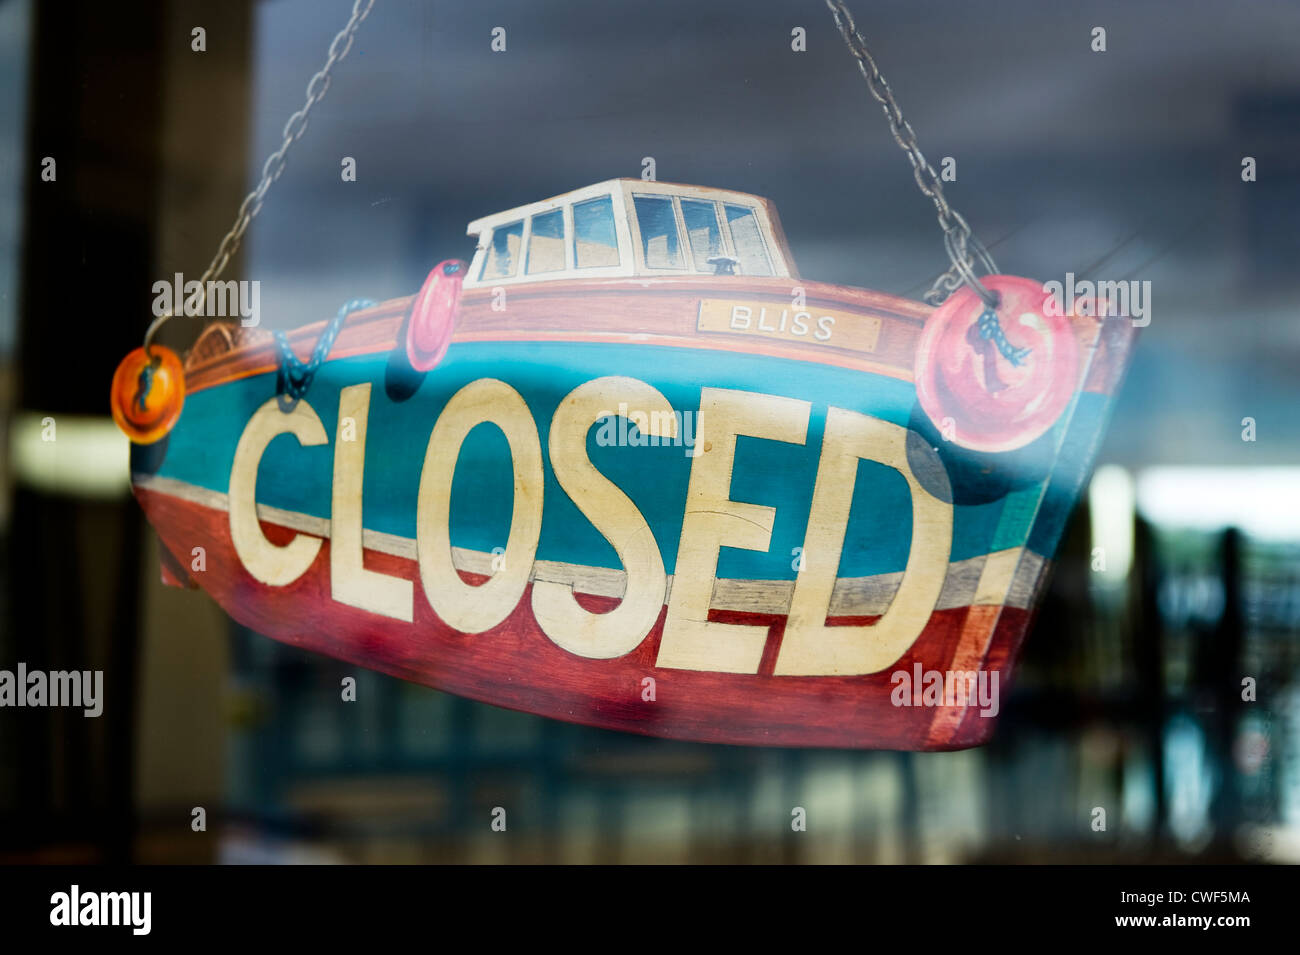 boat shaped closed sign in a shop window Stock Photo